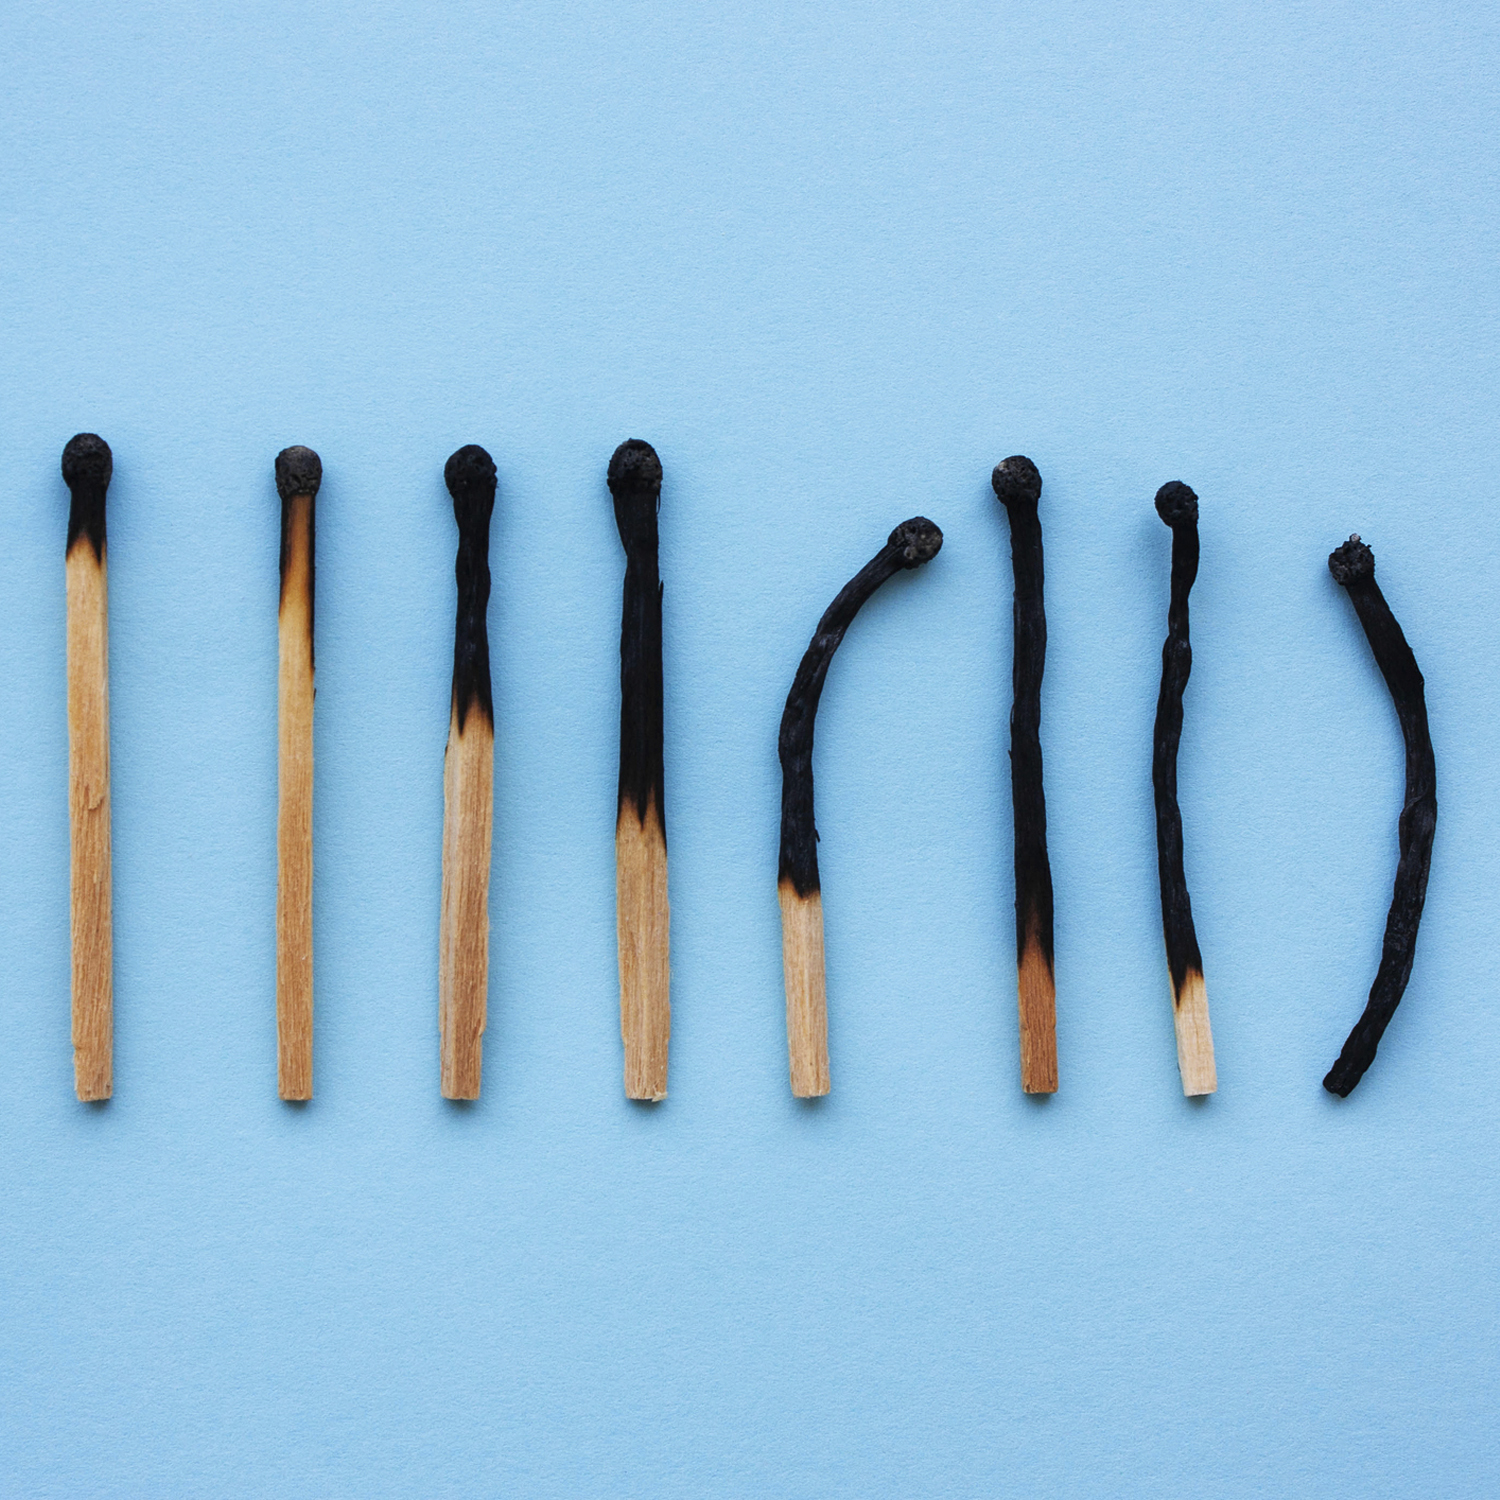 Burnout Threatens to Undermine Clinical Trial Workforce Productivity